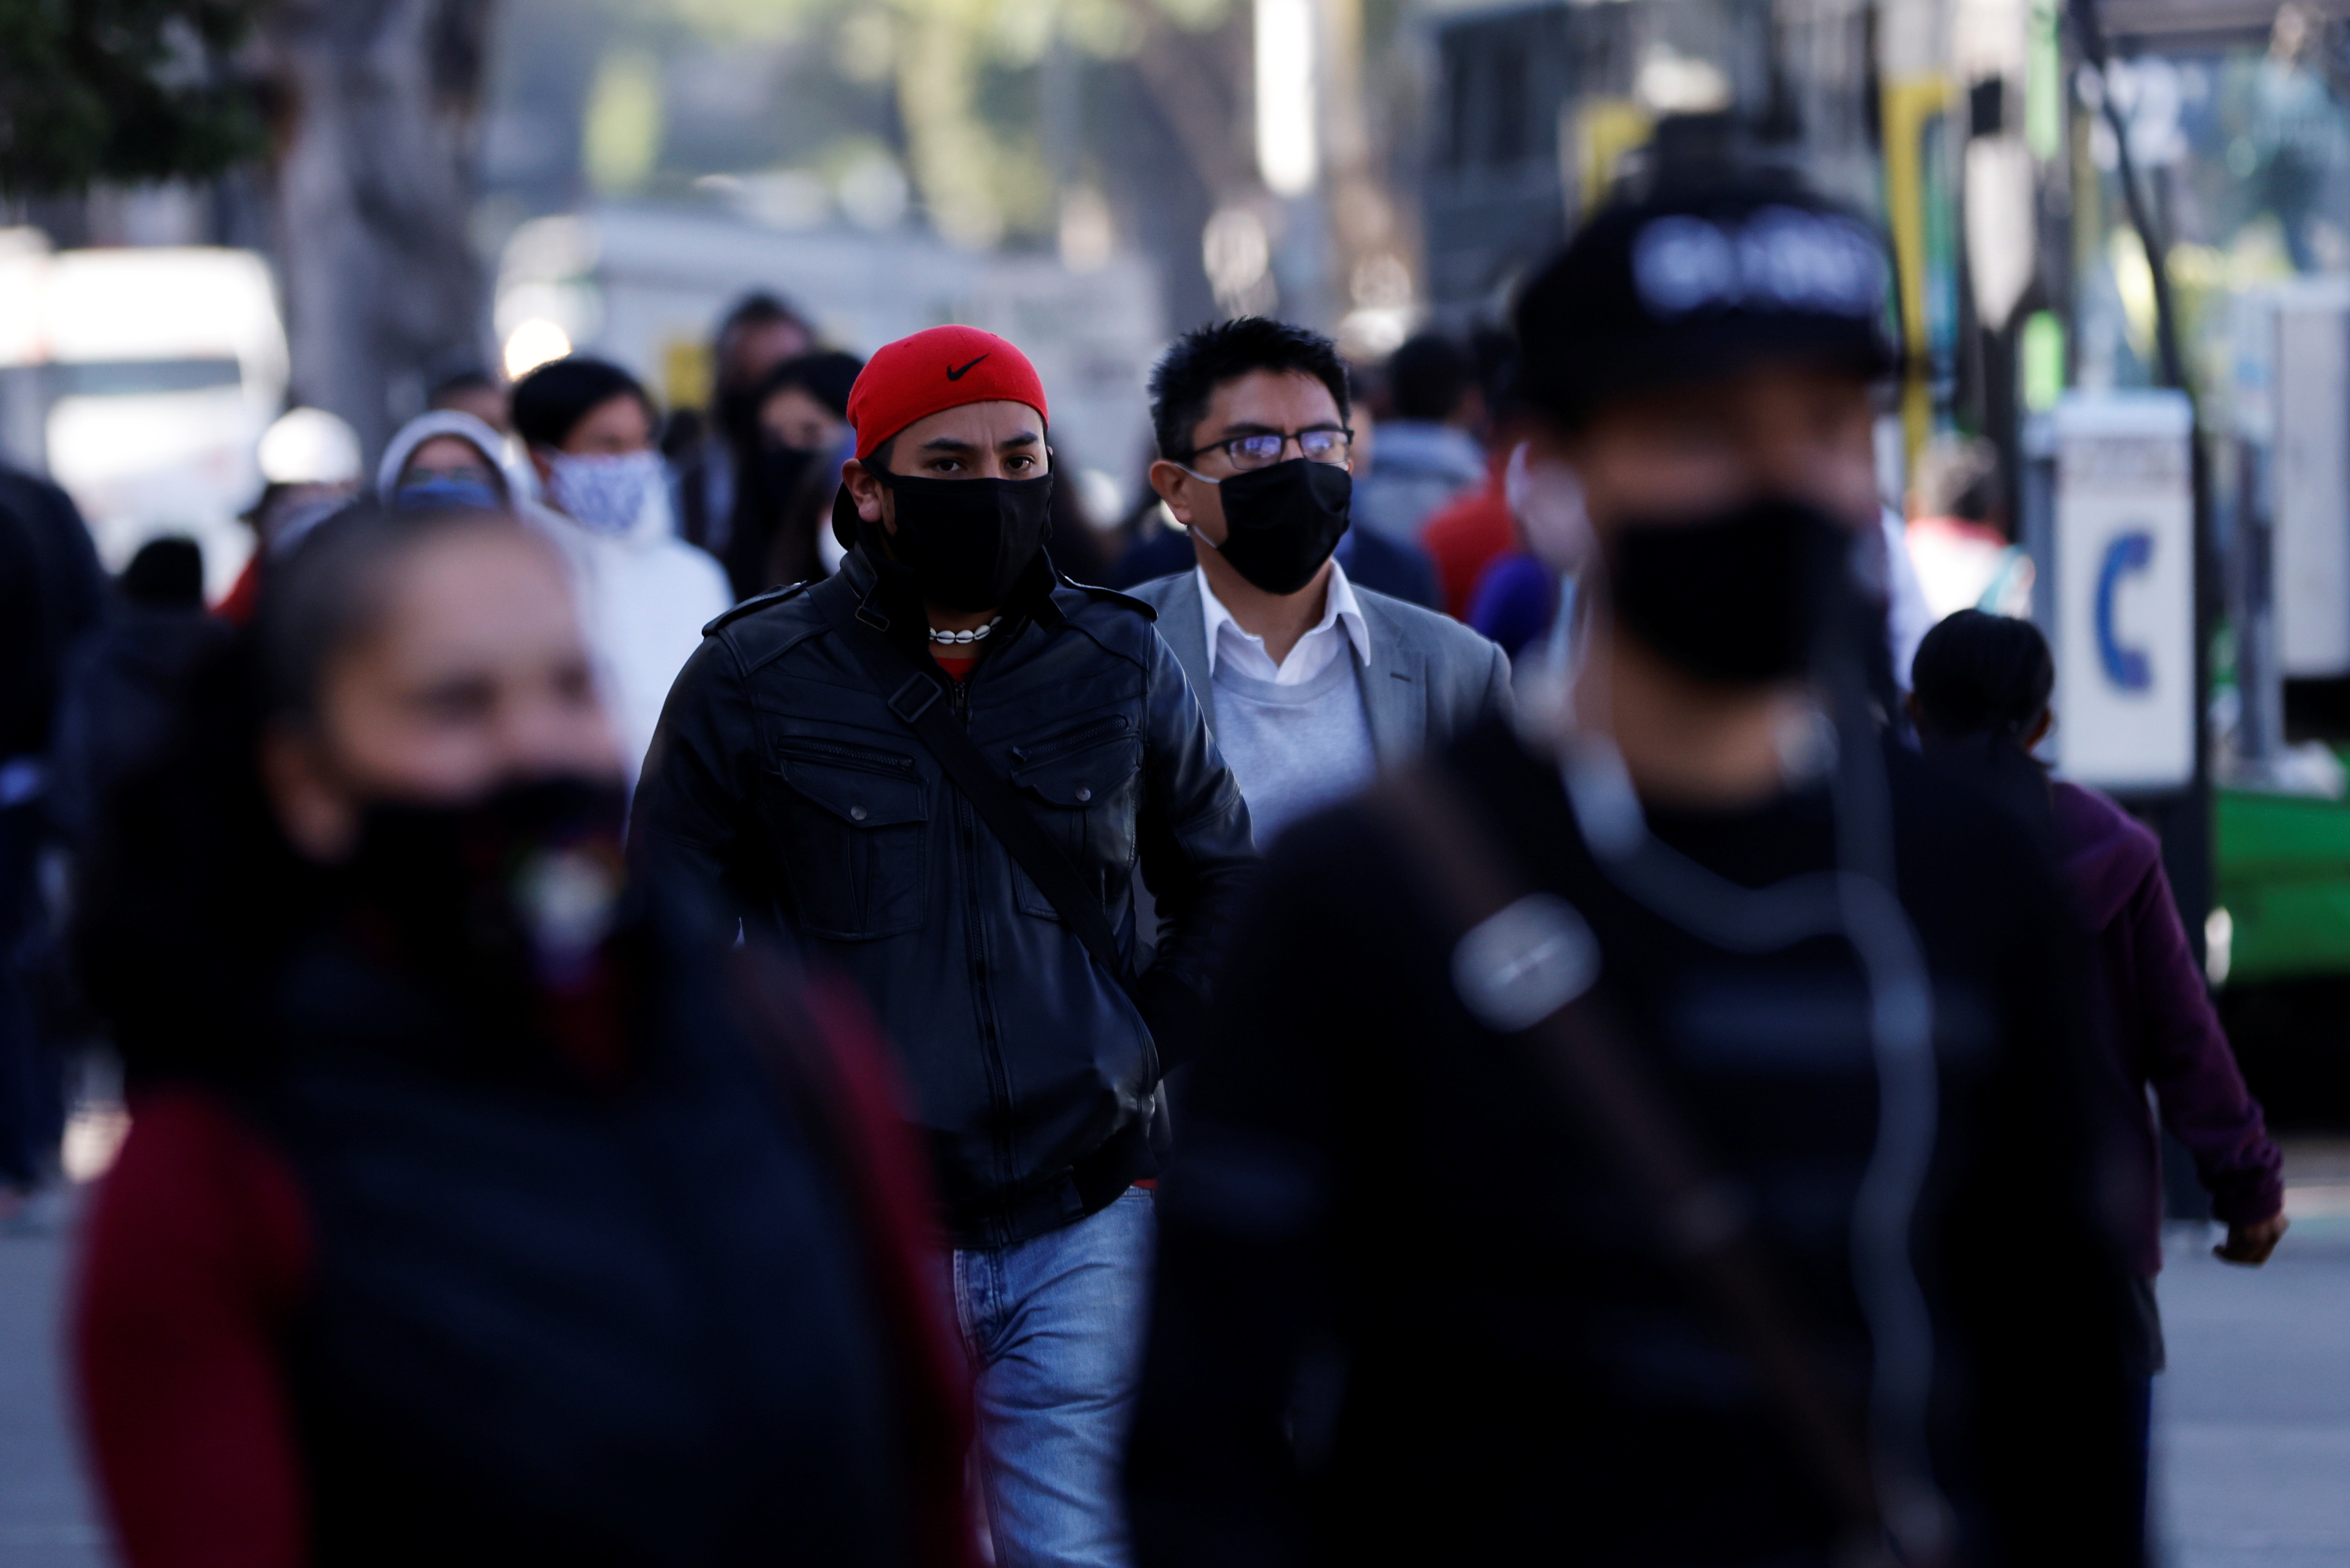 People wearing face masks walk on the street, as the coronavirus disease (COVID-19) outbreak continues, in Mexico City, Mexico.